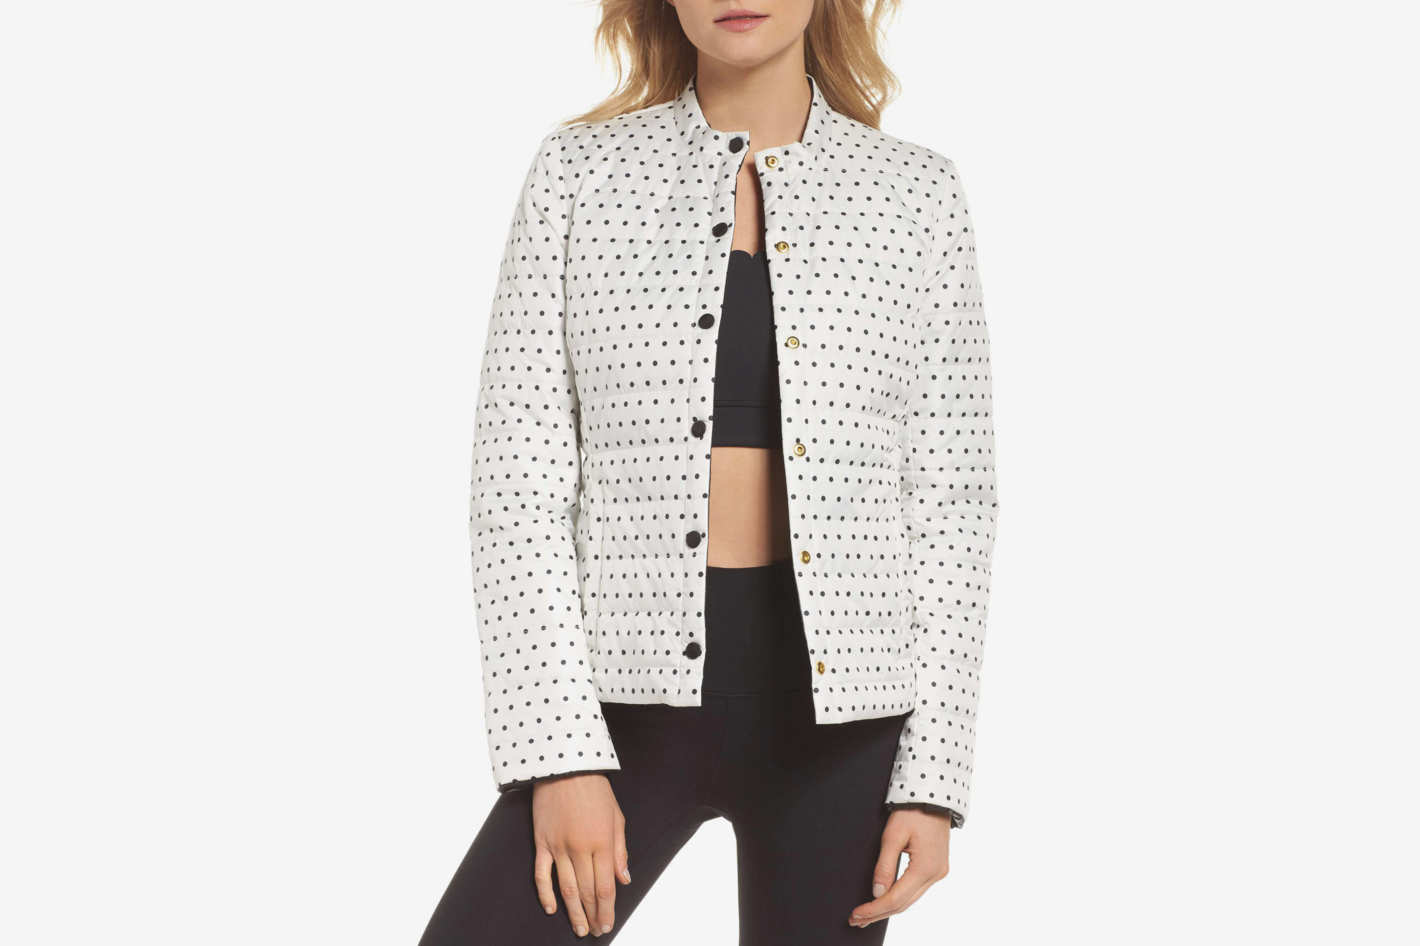 Kate Spade New York Reversible Quilted Jacket